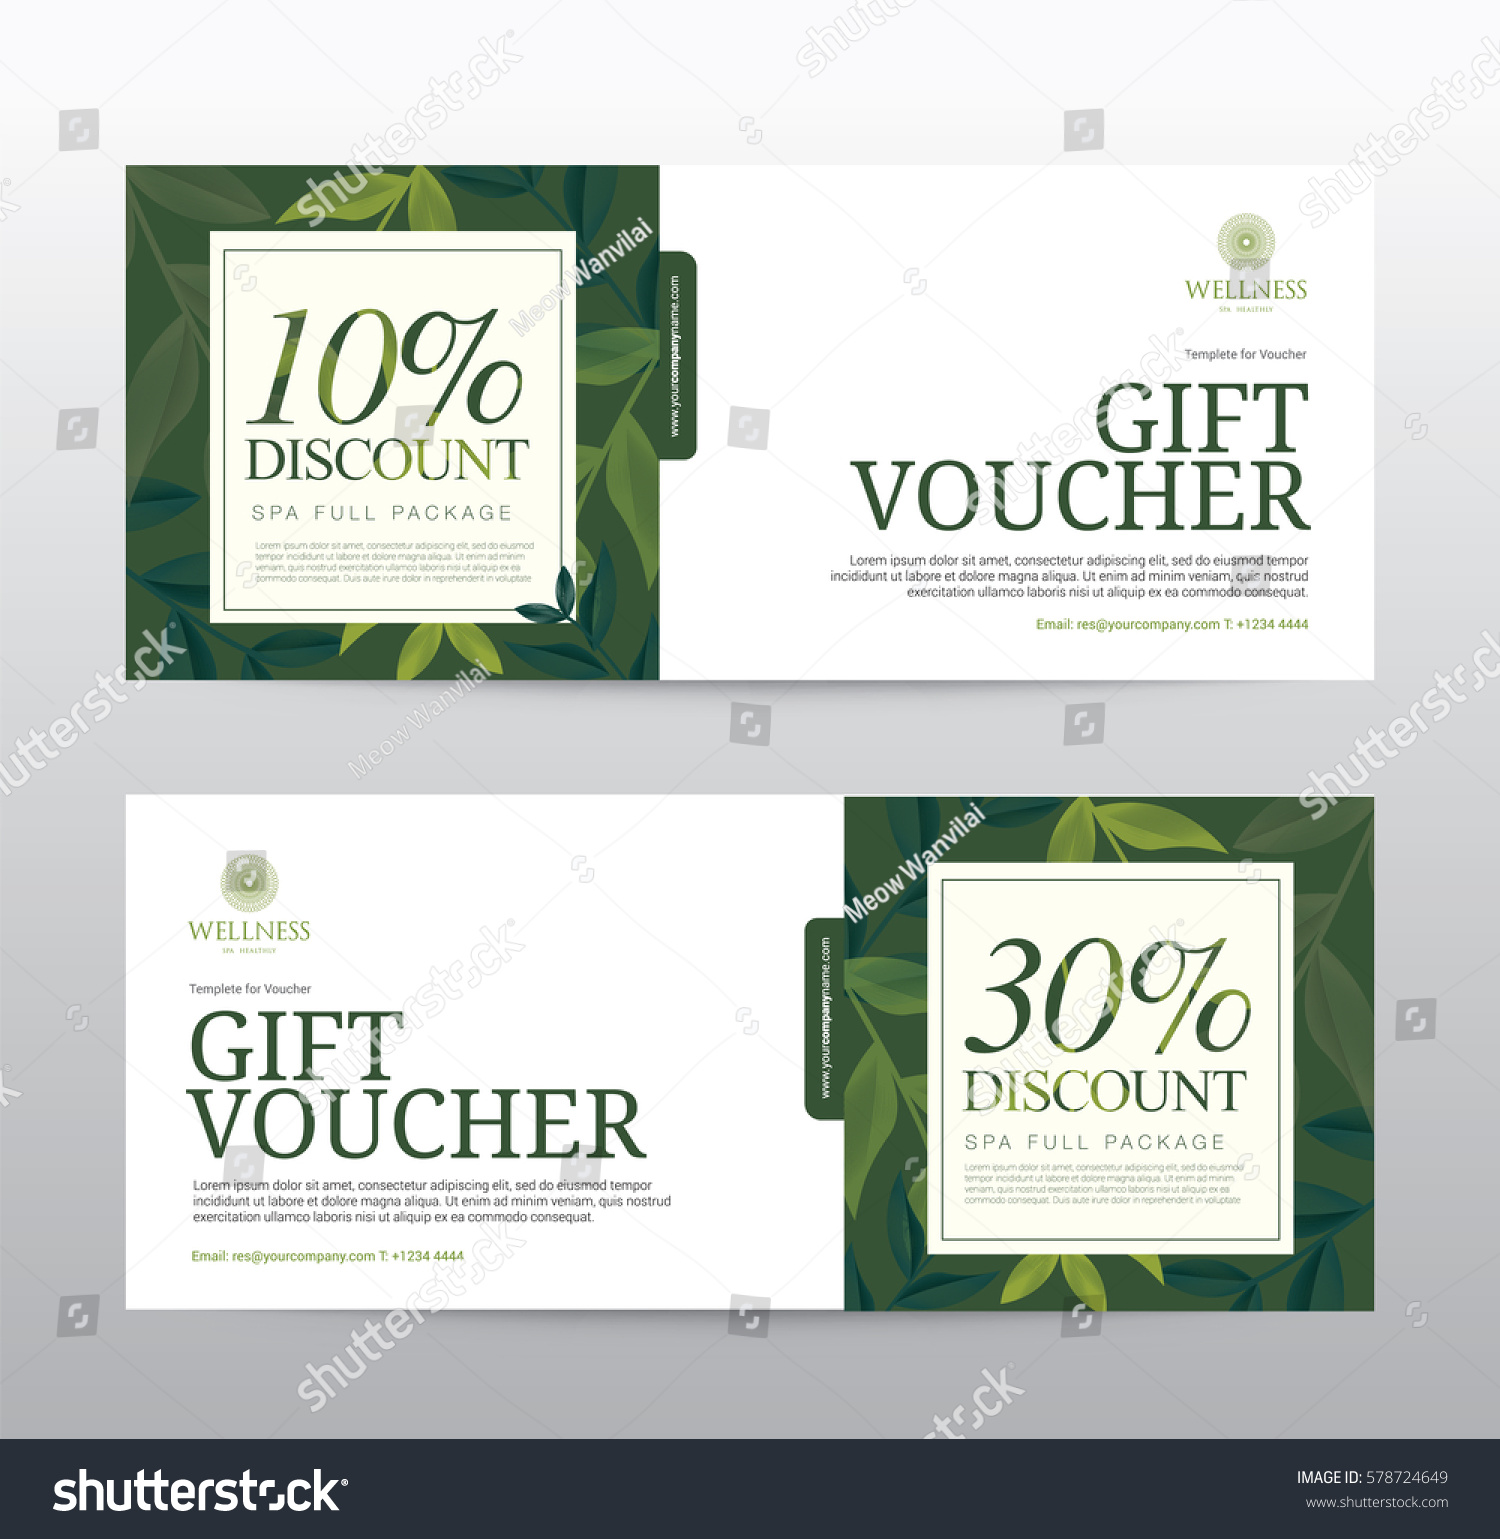 Gift Voucher Template Spa Hotel Resort Stock Vector Royalty Free - Email gift certificate template